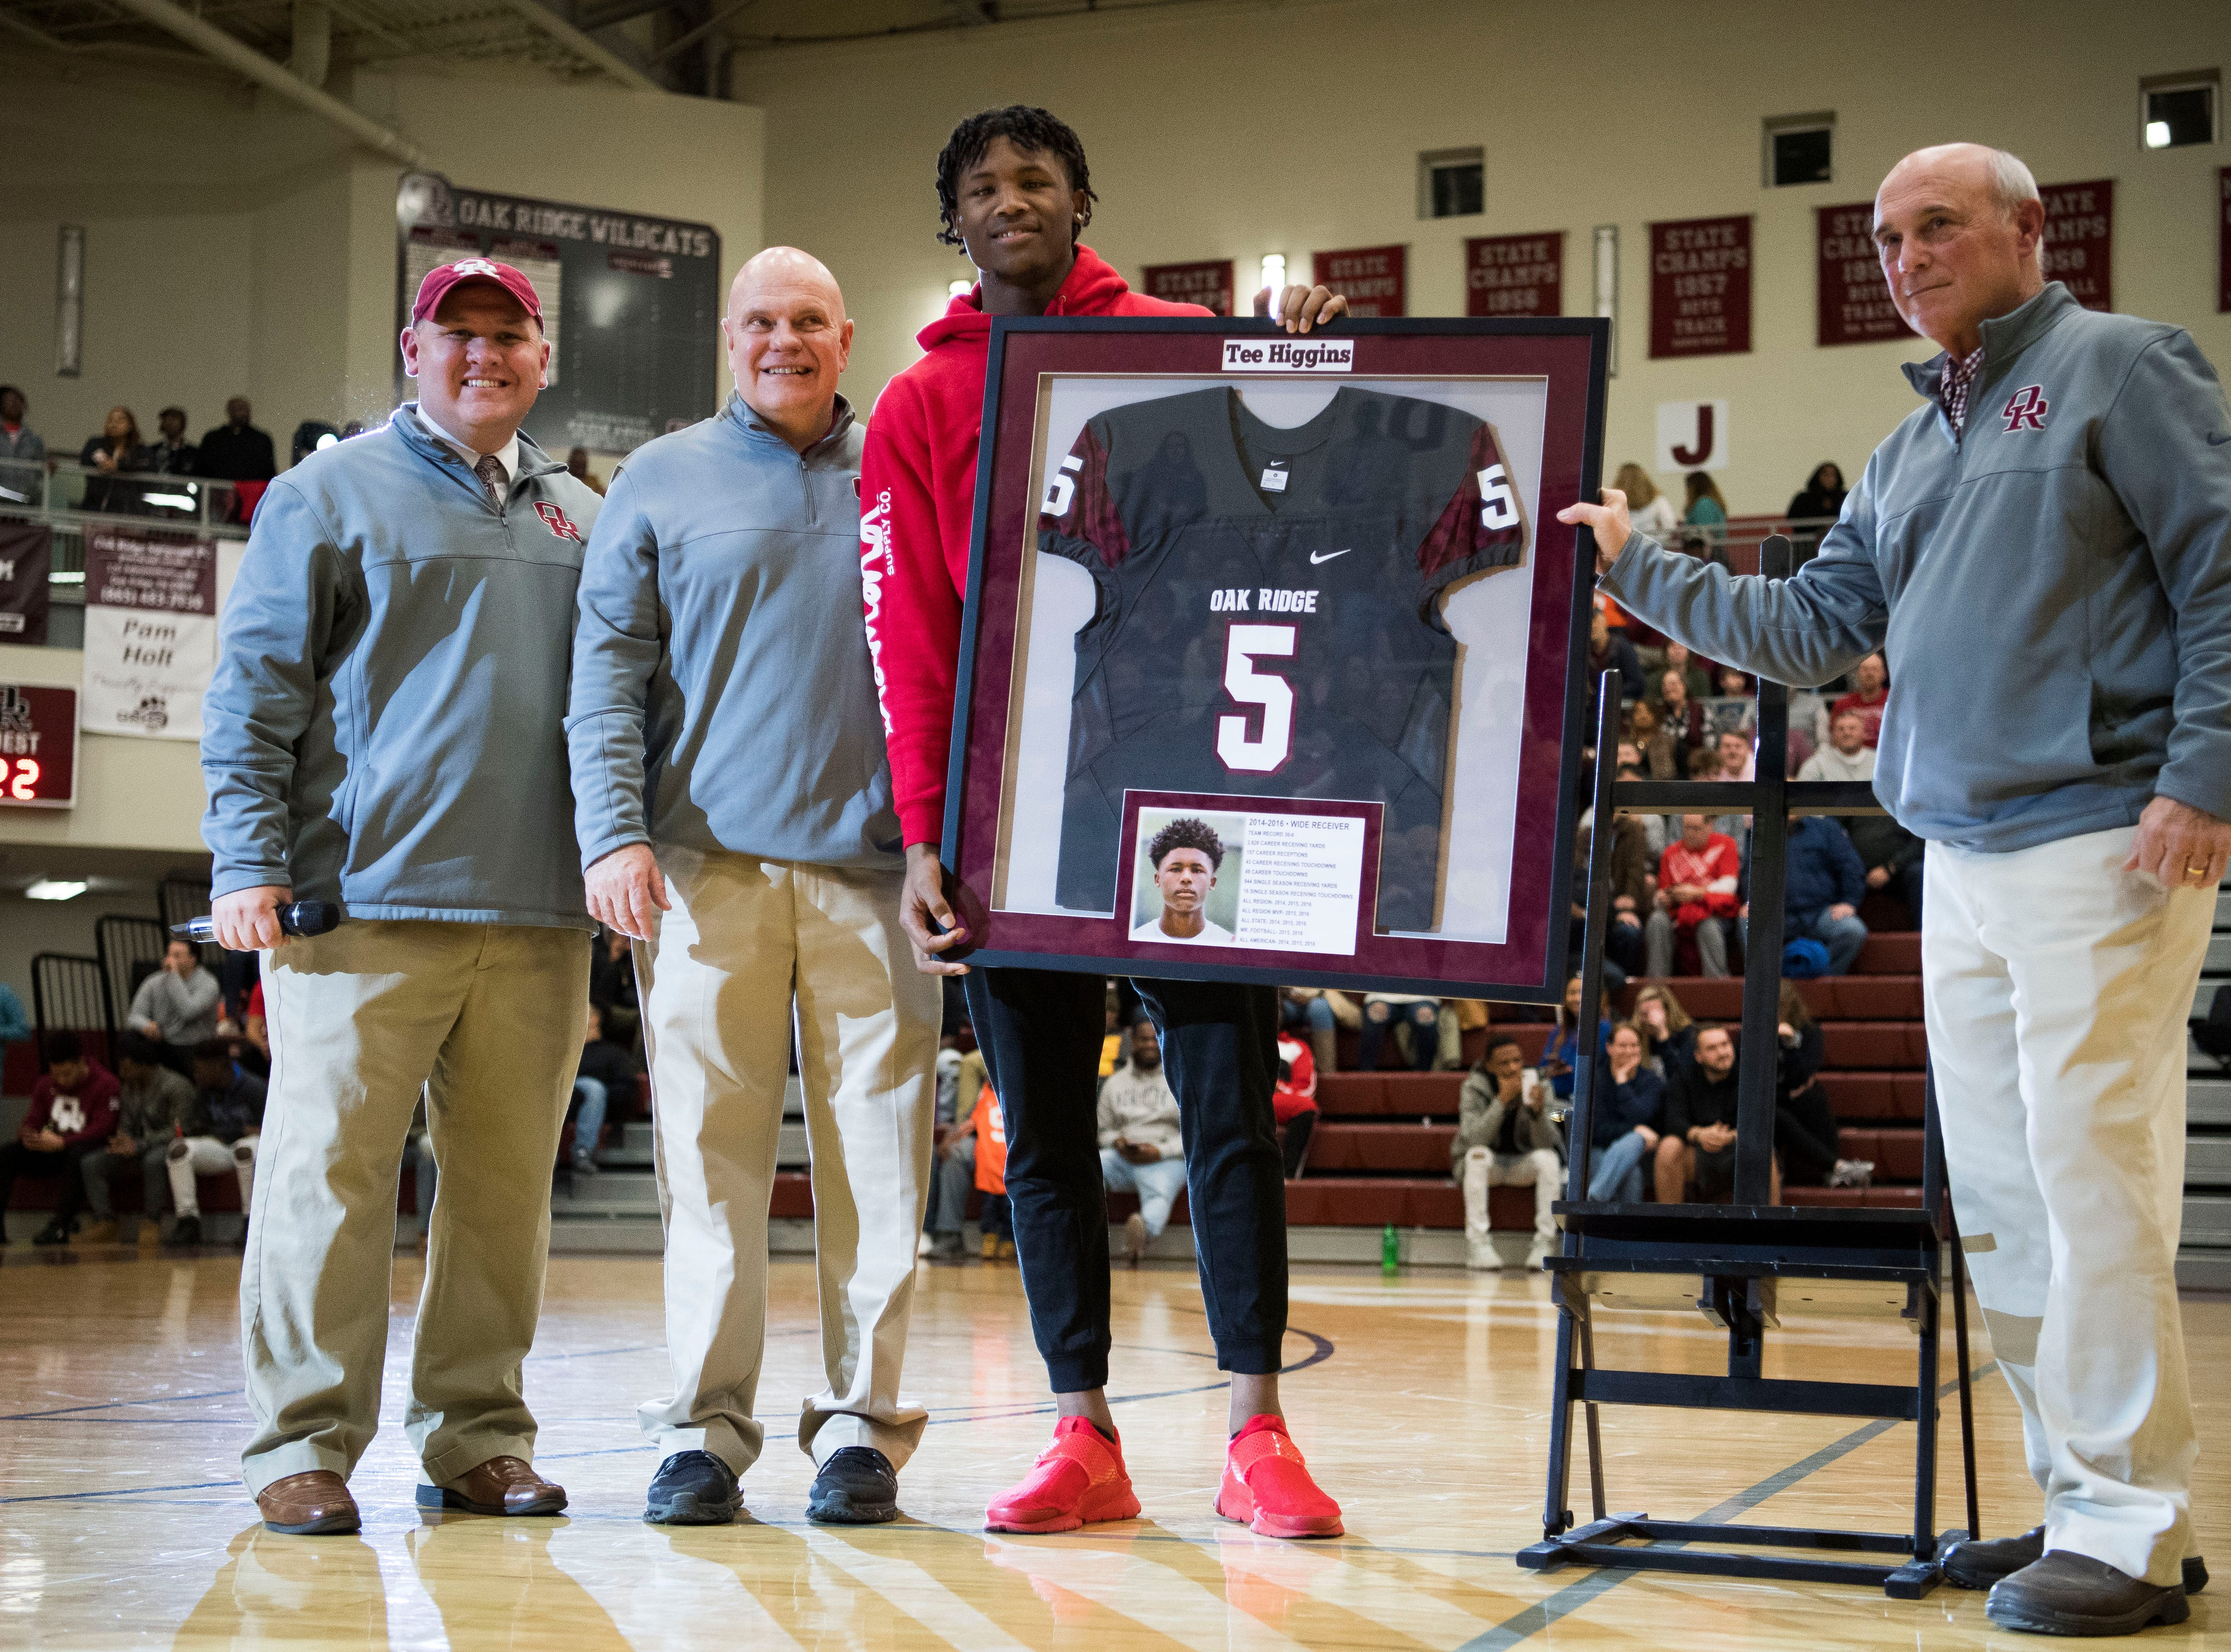 From left Oak Ridge High School principal Martin McDonald, ORHS athletic director Mike Mullins, former Oak Ridge High School athlete Tee Higgins, who is now a wide receiver at Clemson University, and ORHS head football coach Joe Gaddis, pose for a photo as Higgin's jersey is retired during a high school basketball game between Oak Ridge and Campbell County at Oak Ridge Friday, Feb. 1, 2019.